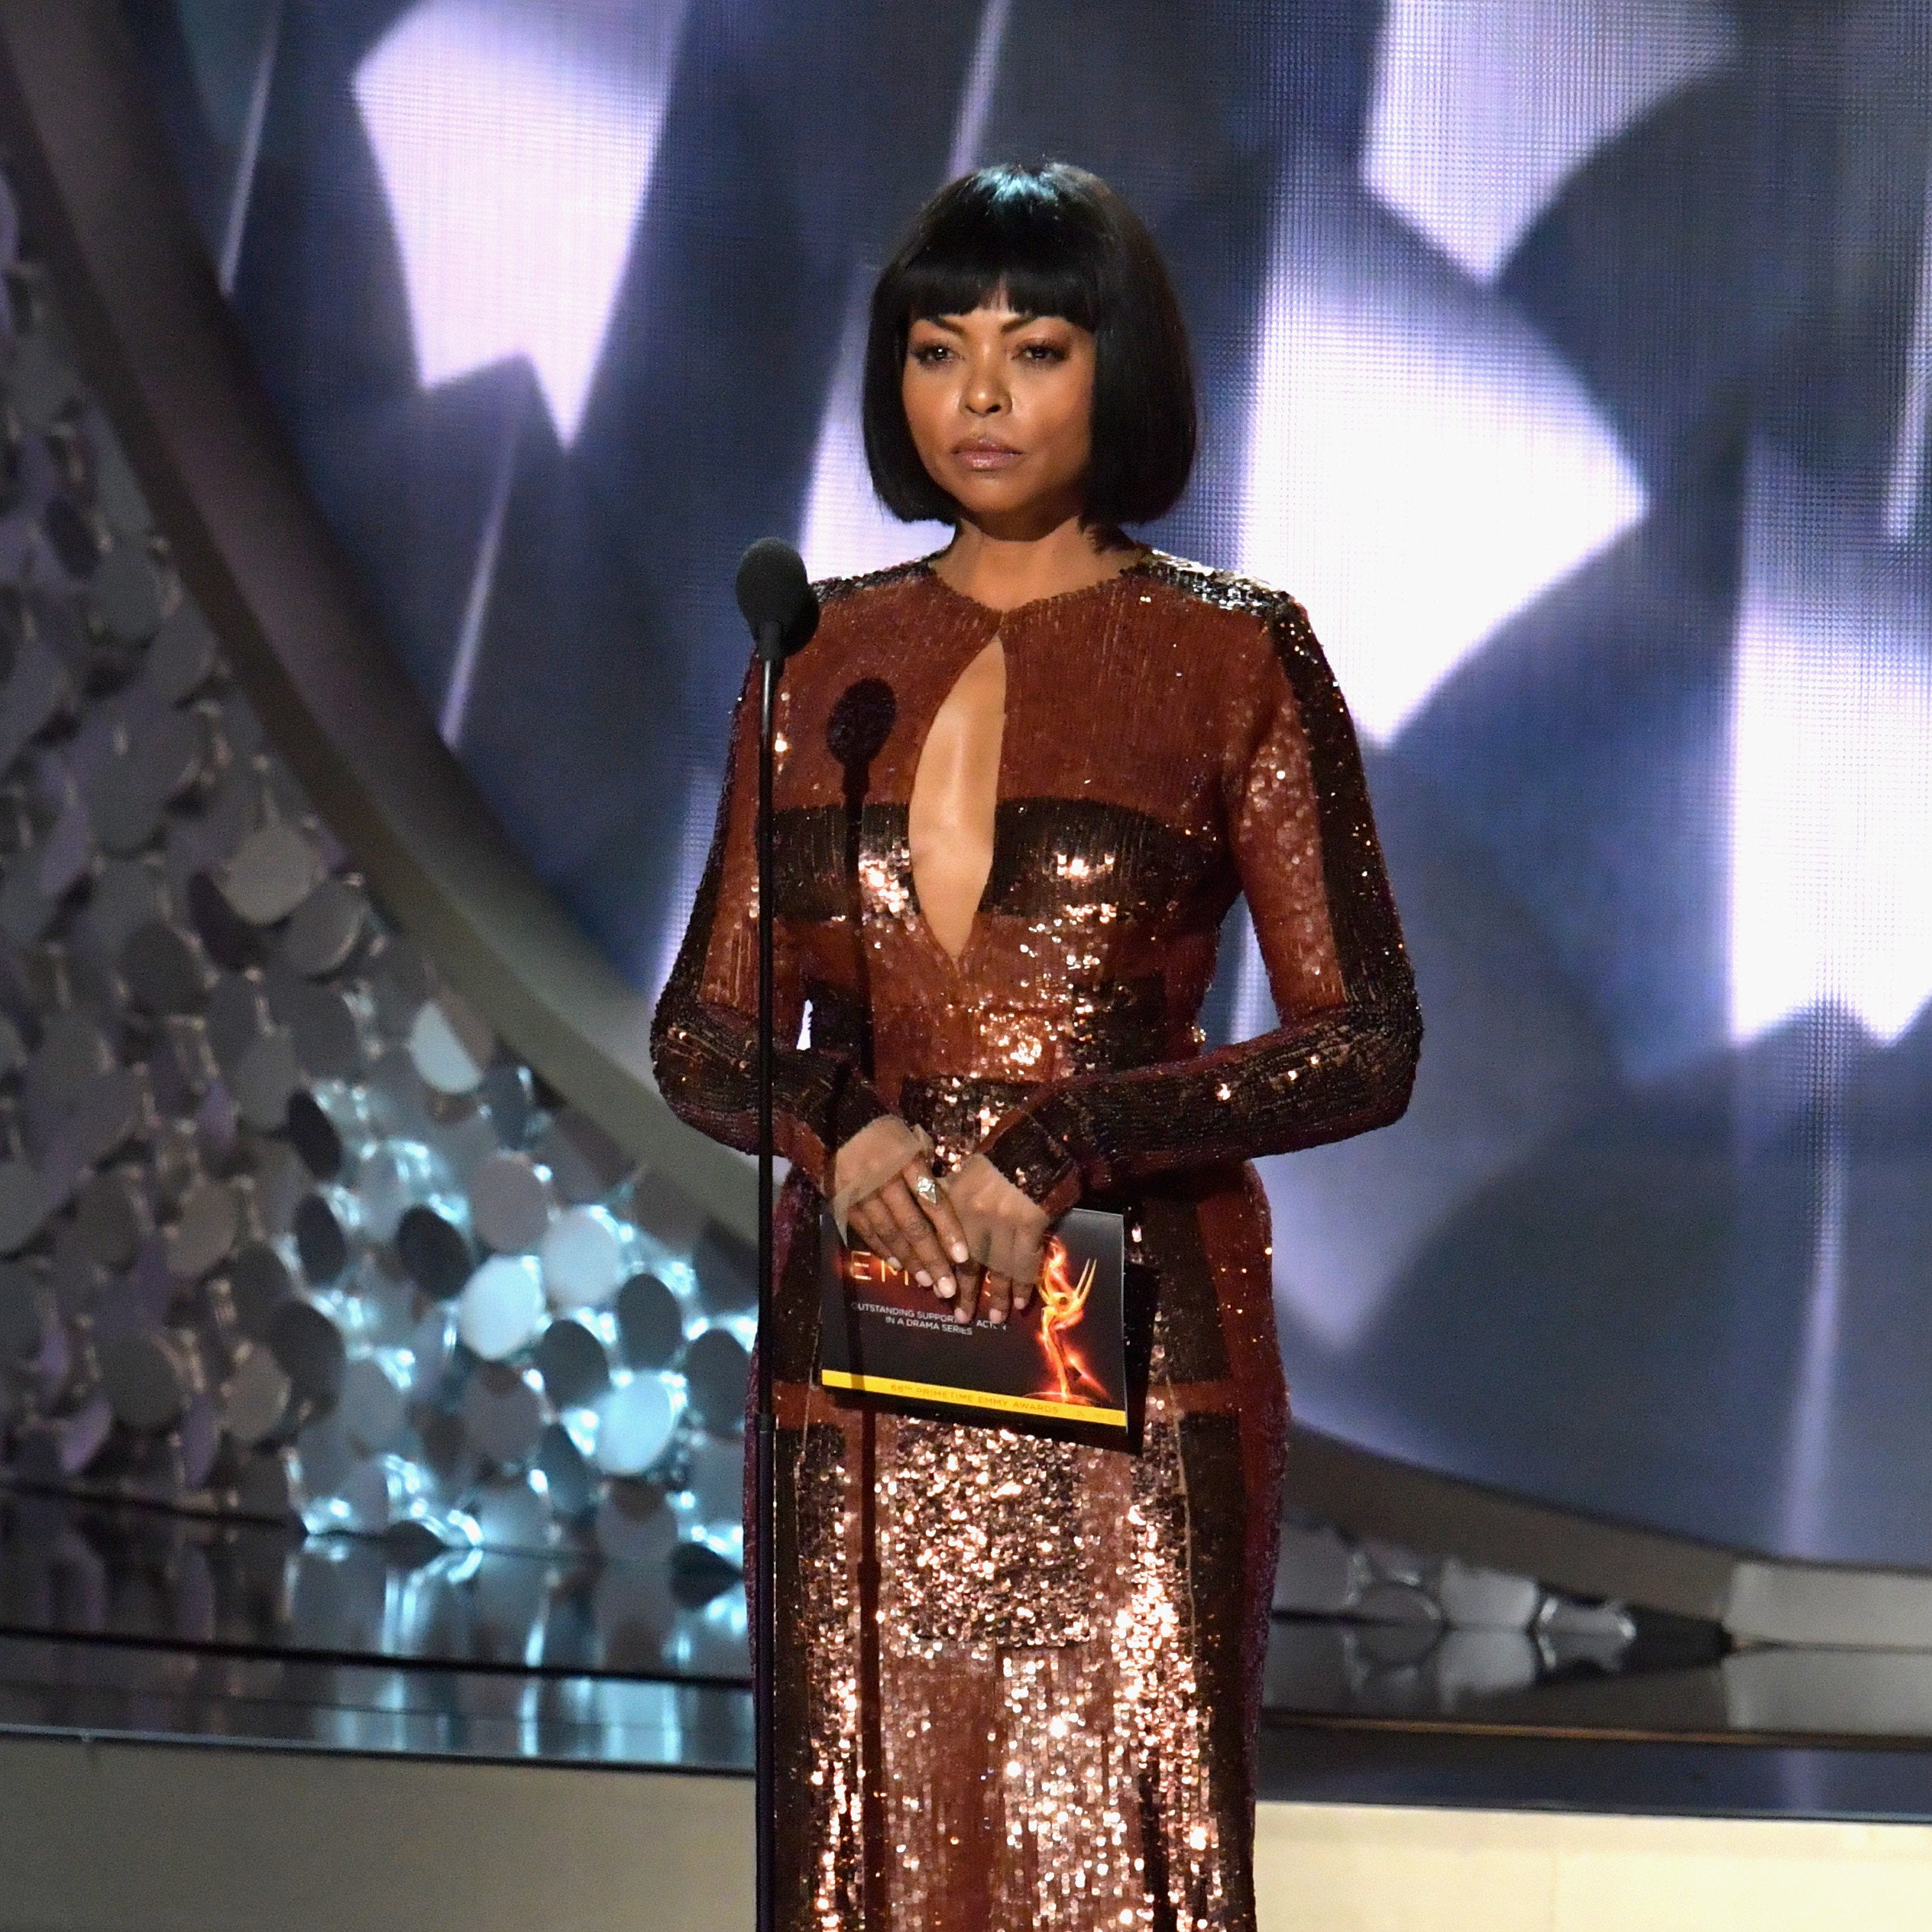 Photo Fab! Take A Look At This EXCLUSIVE Taraji P. Henson BTS Look From 'Empire'